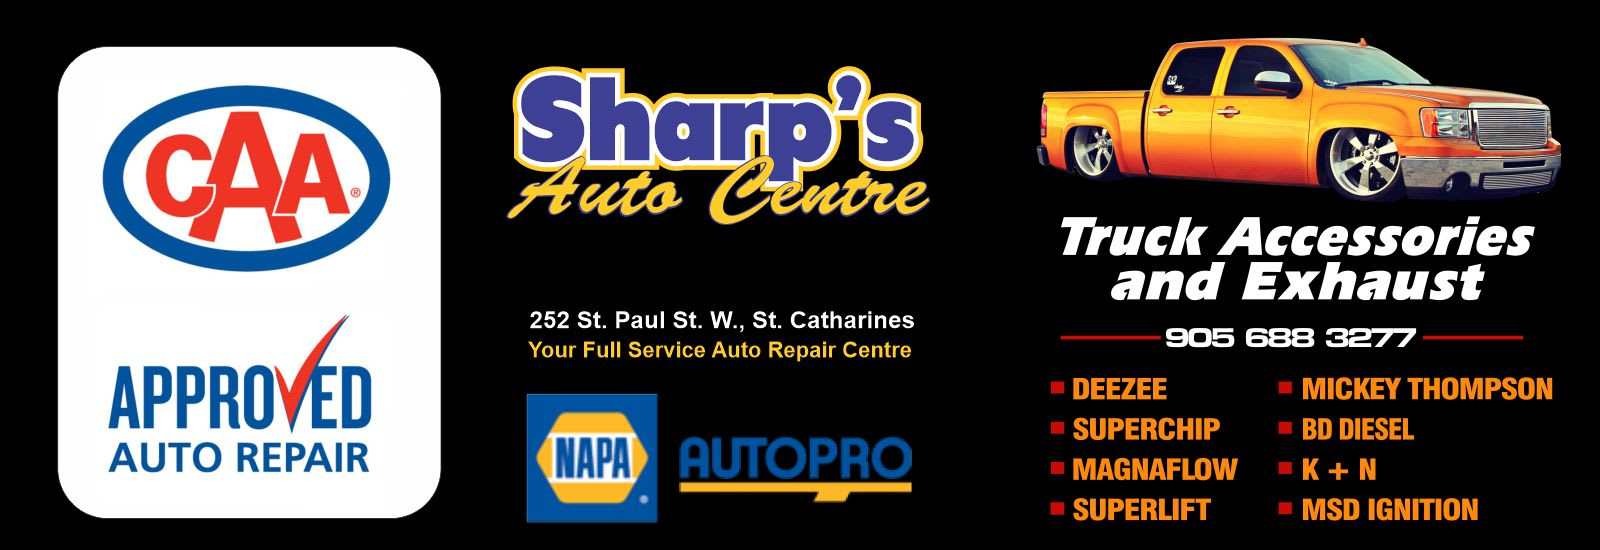 CAA Approved Auto Repair - St. Catharines 5 star reviews